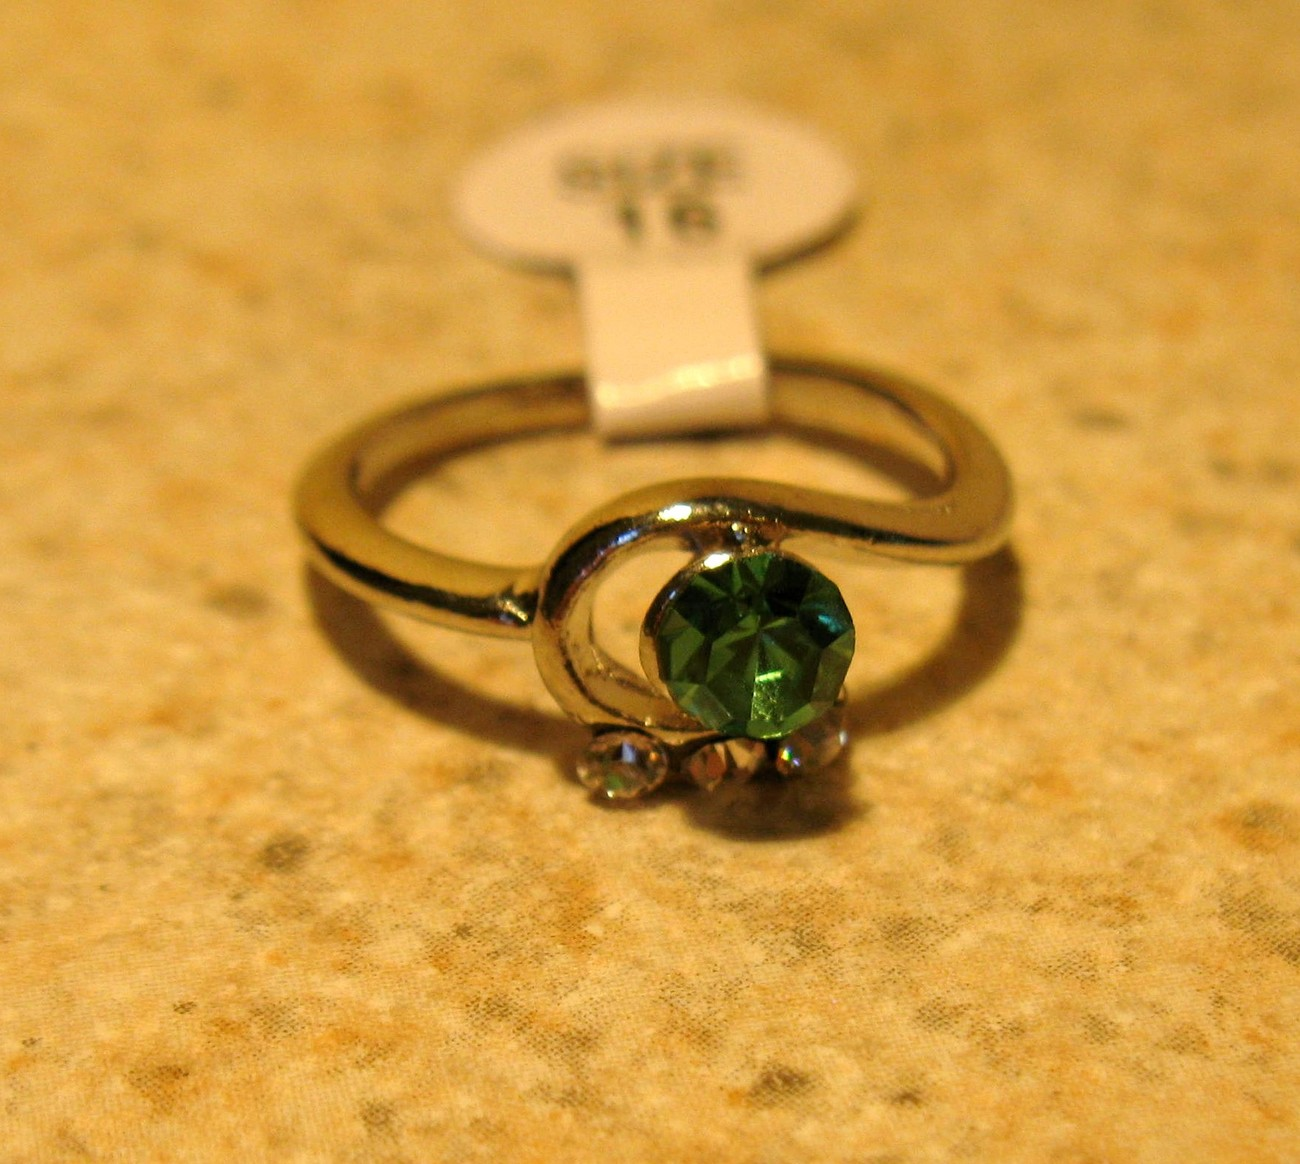 Primary image for RING WOMEN'S FAUX GREEN PERIDOT SWIRL RING SIZE 6 NEW #248